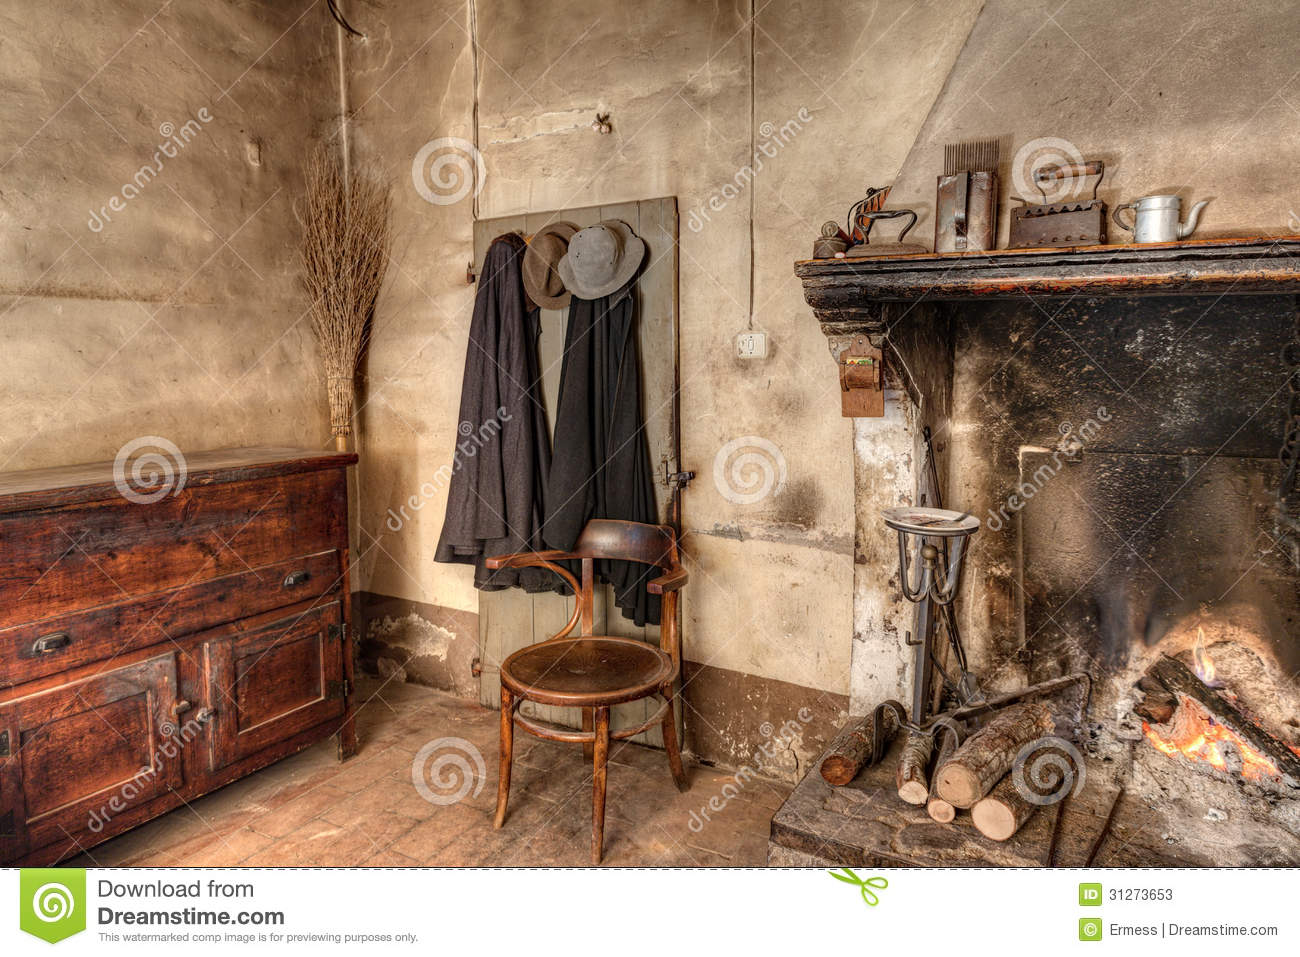 Int rieur d 39 une vieille maison de campagne photos stock image 31273653 for Interieur d une maison